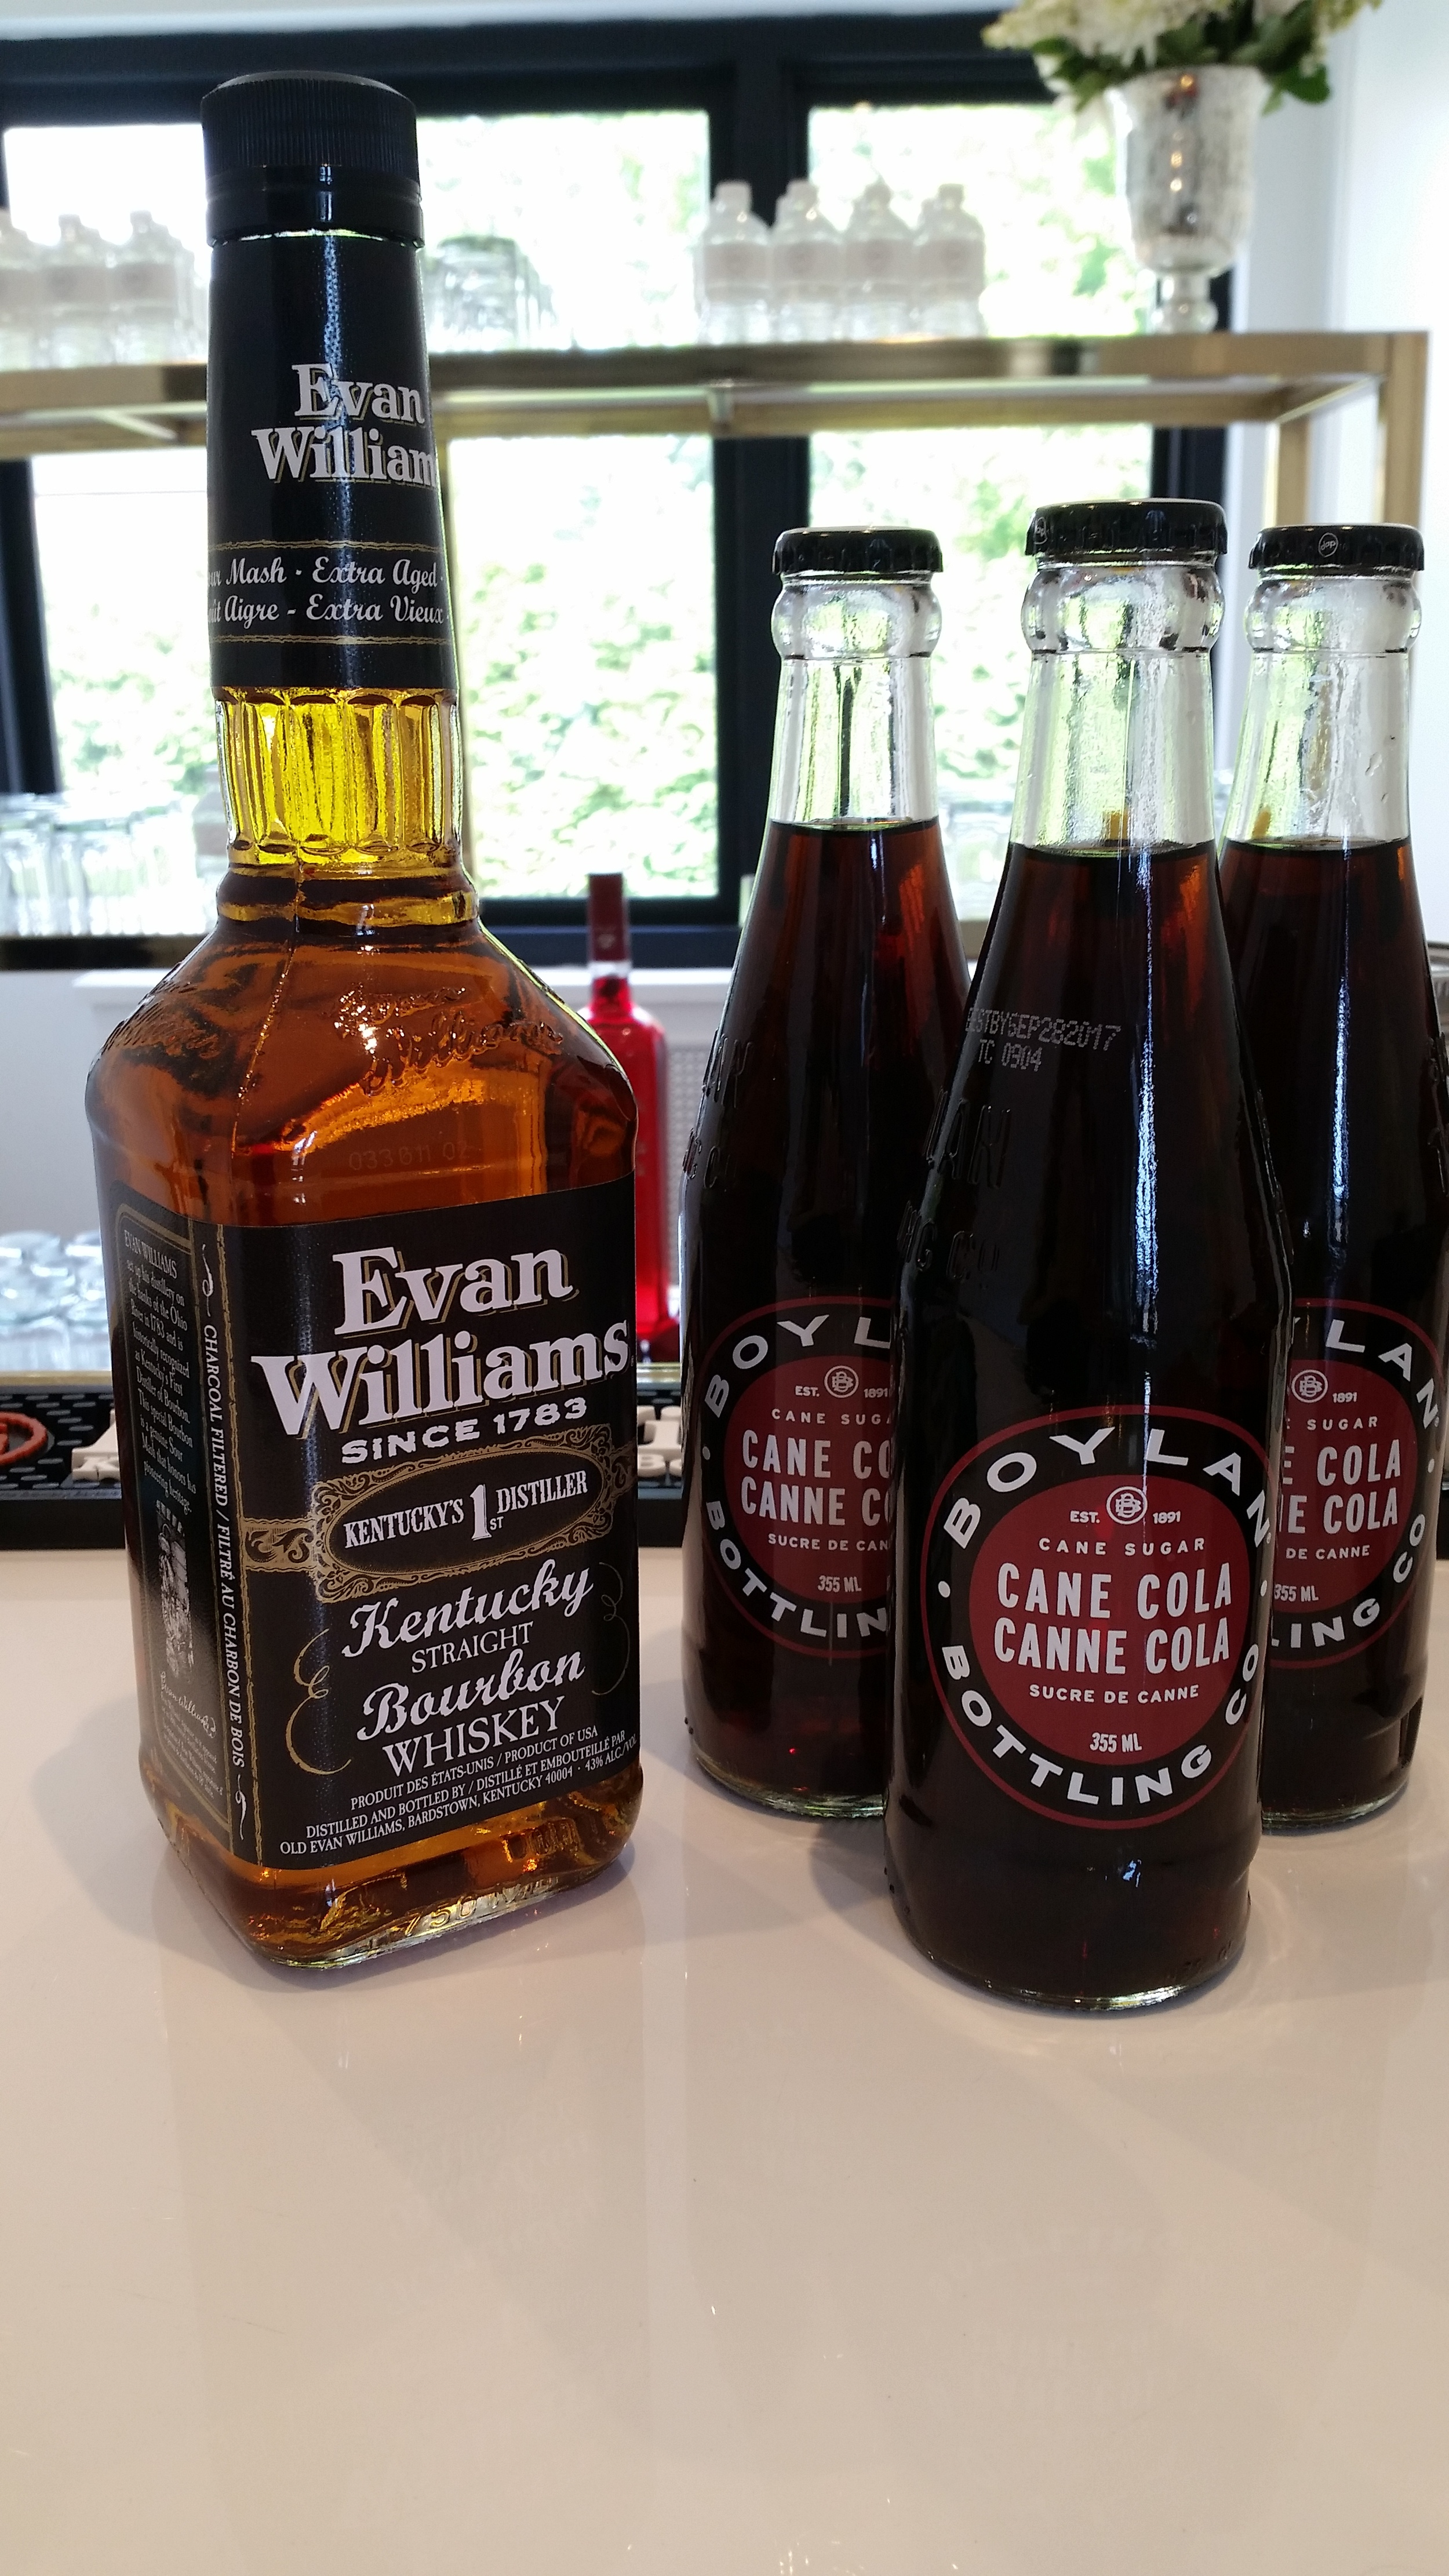 Evan Williams Bourbon Whiskey is amazing on its own or in an Old fashioned but is delightfully complimented with a sugar cane cola. We use Boylan cane cola.